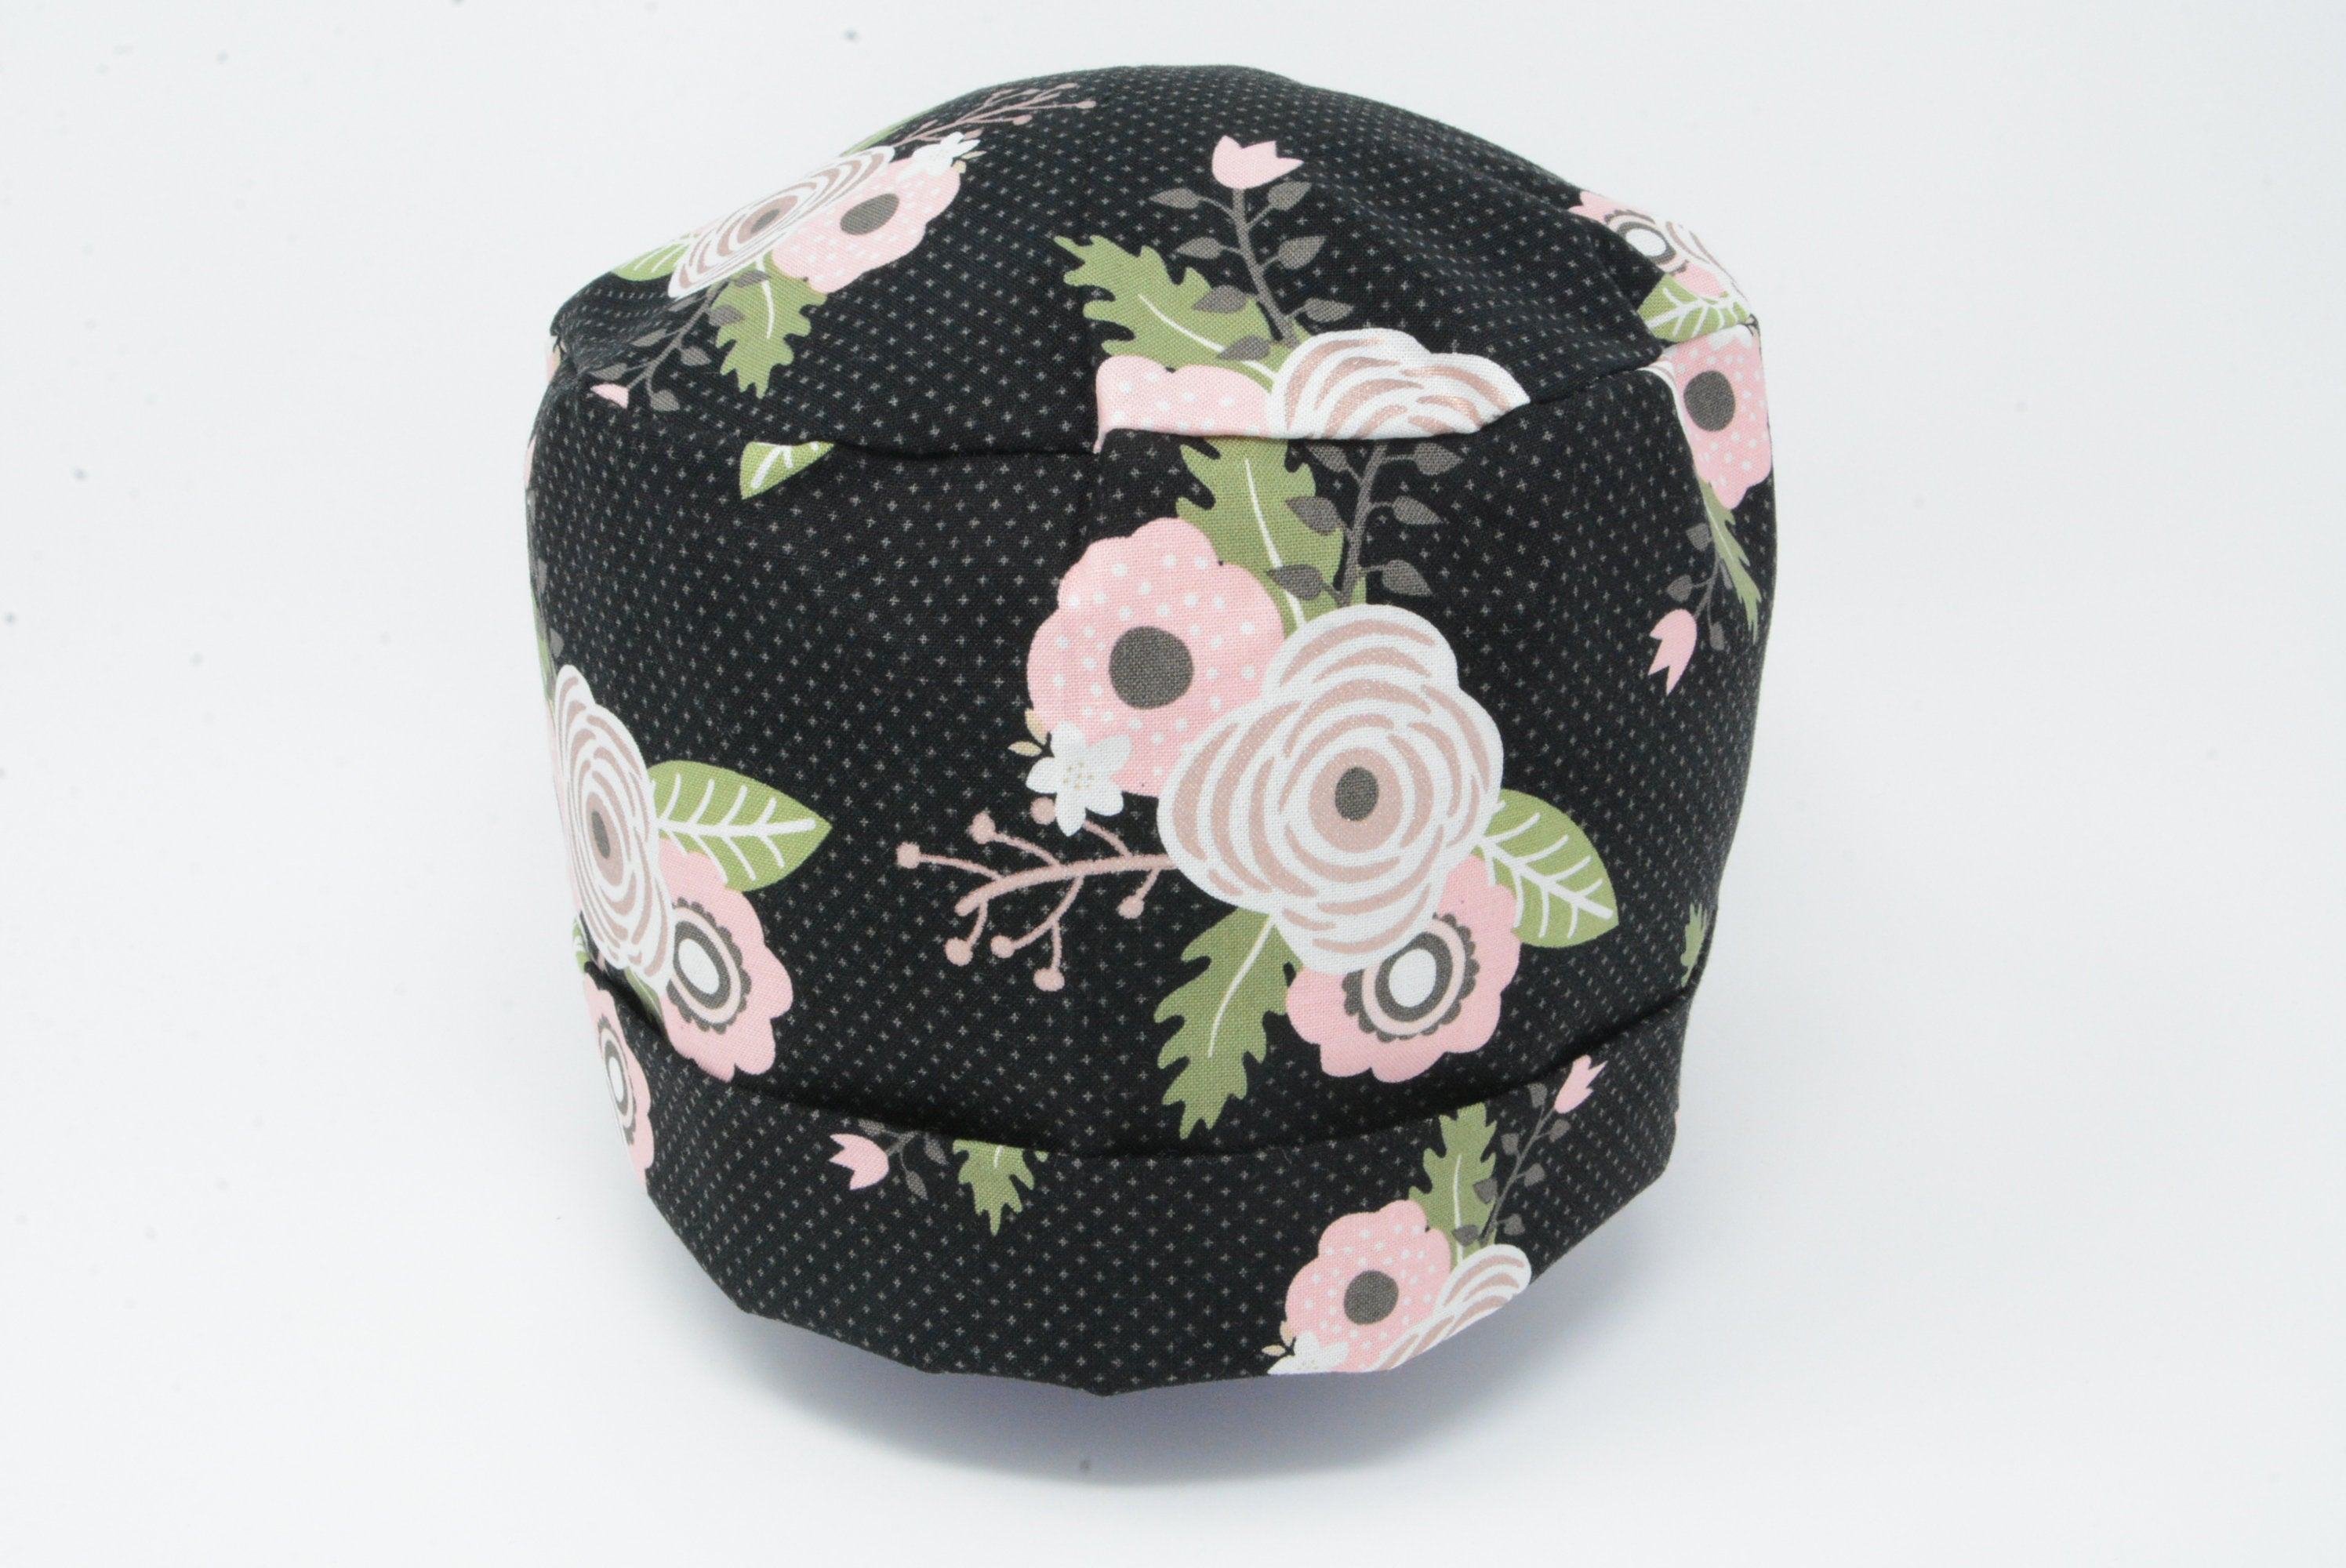 Roses on Black with Polka Dots *Rose Gold Print*